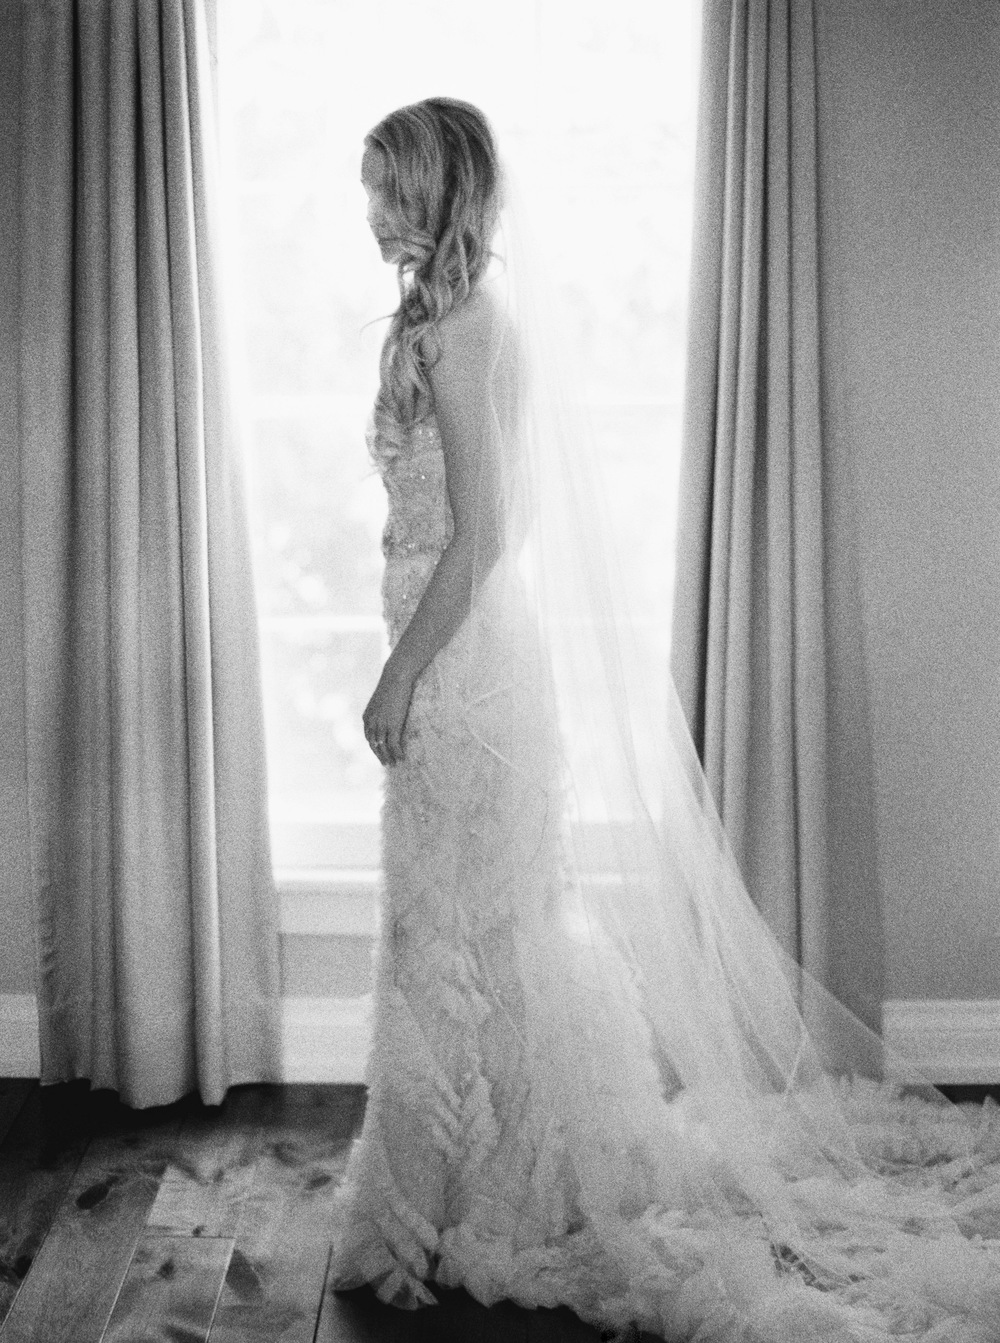 Kurtz-Orchards-Niagara-on-the-Lake-Wedding-photography-by-When-He-Found-Her-022.JPG